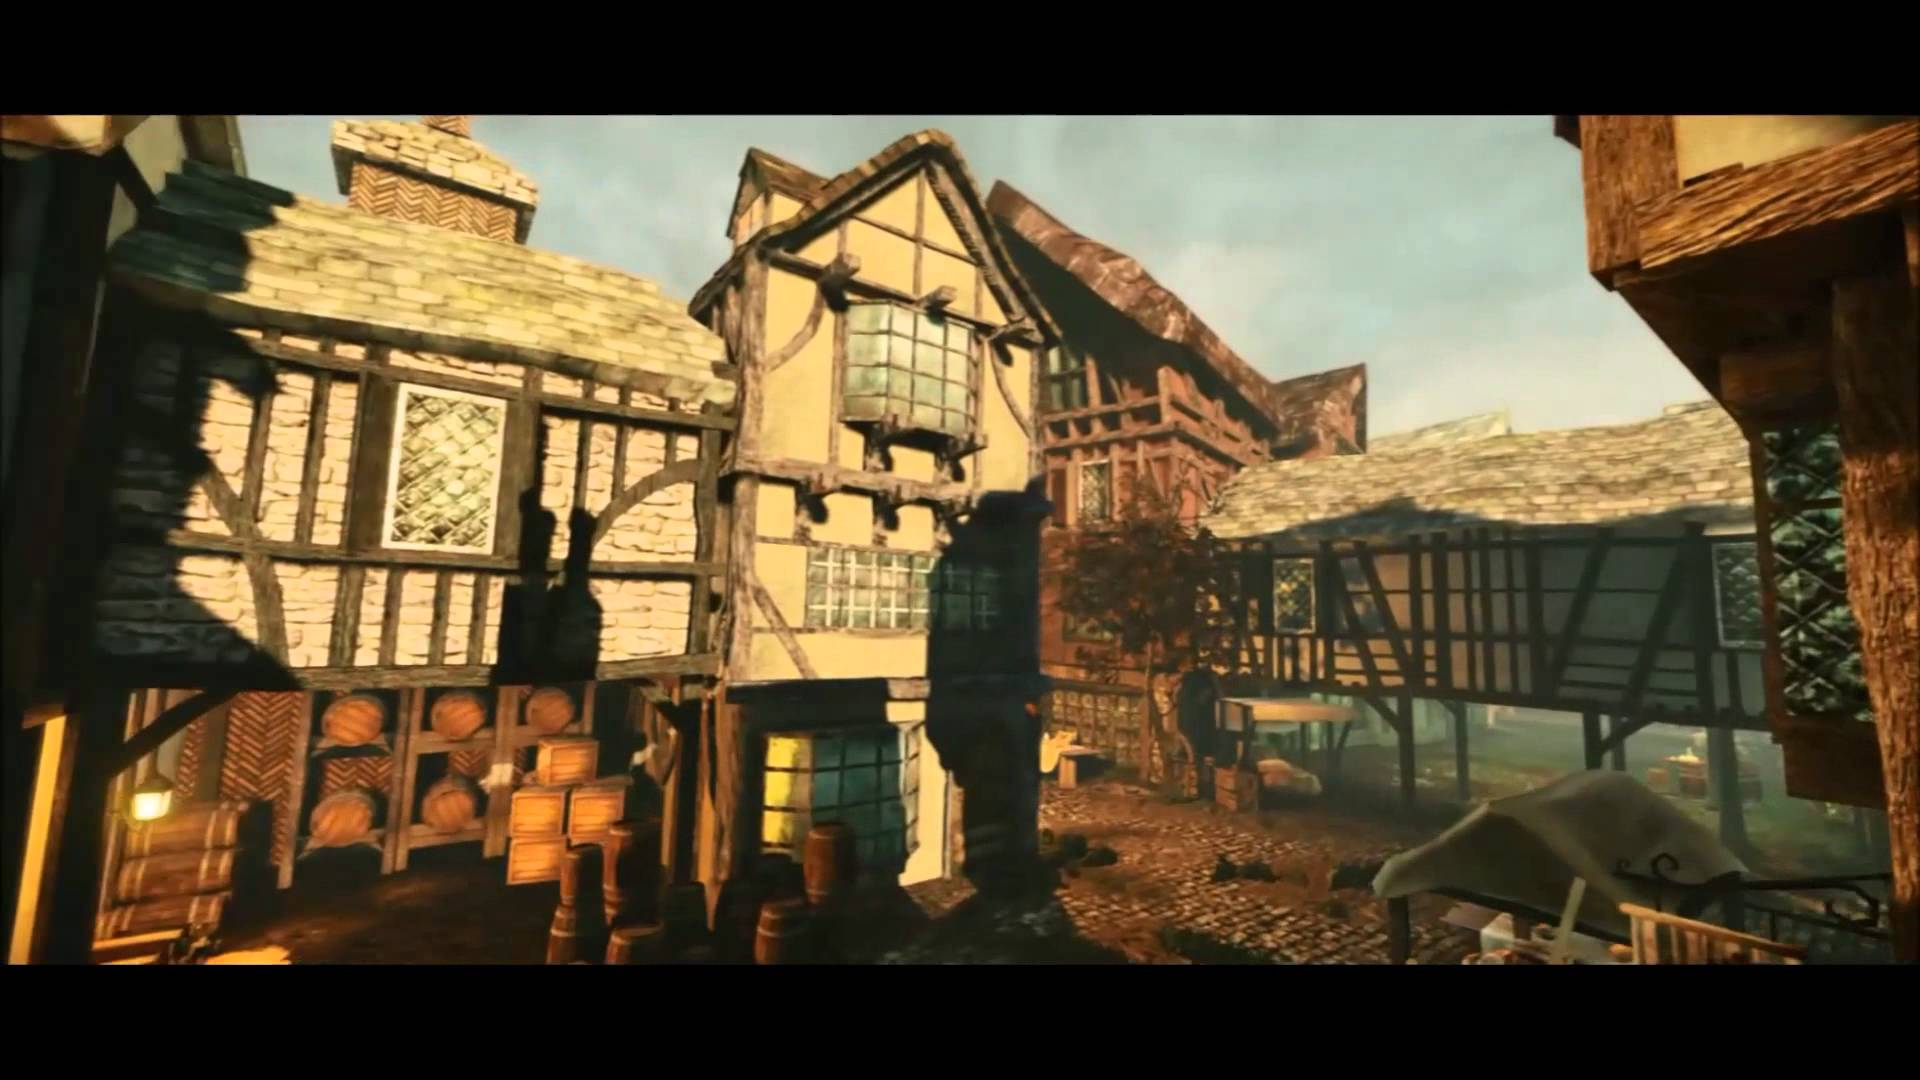 Smog Check History >> Video: Fly Through Pre-Fire 17th Century London Beautifully Recreated - Londontopia